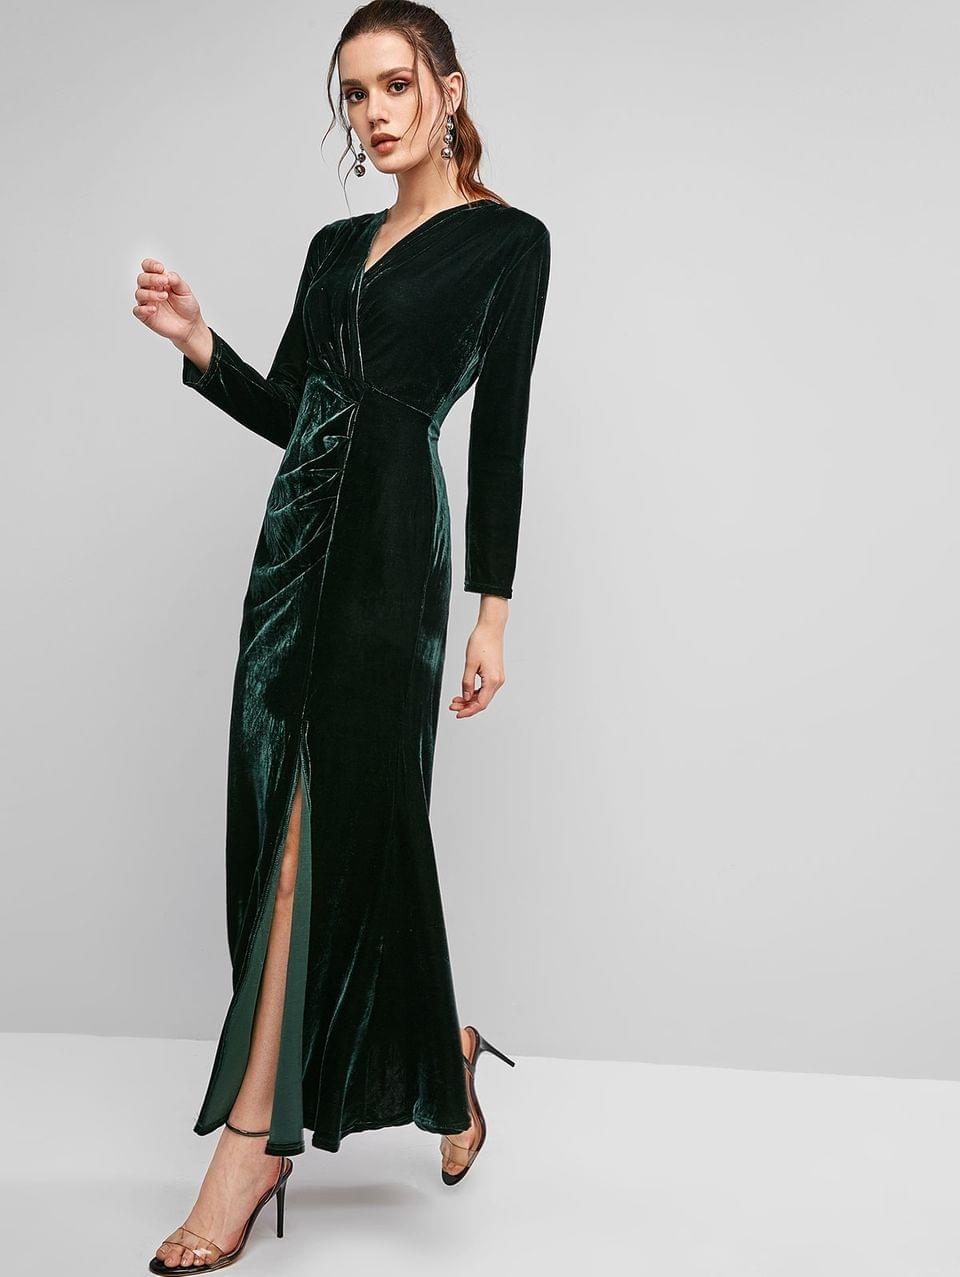 Women's Long Sleeve Velvet Draped Slit Maxi Dress - Dark Green M